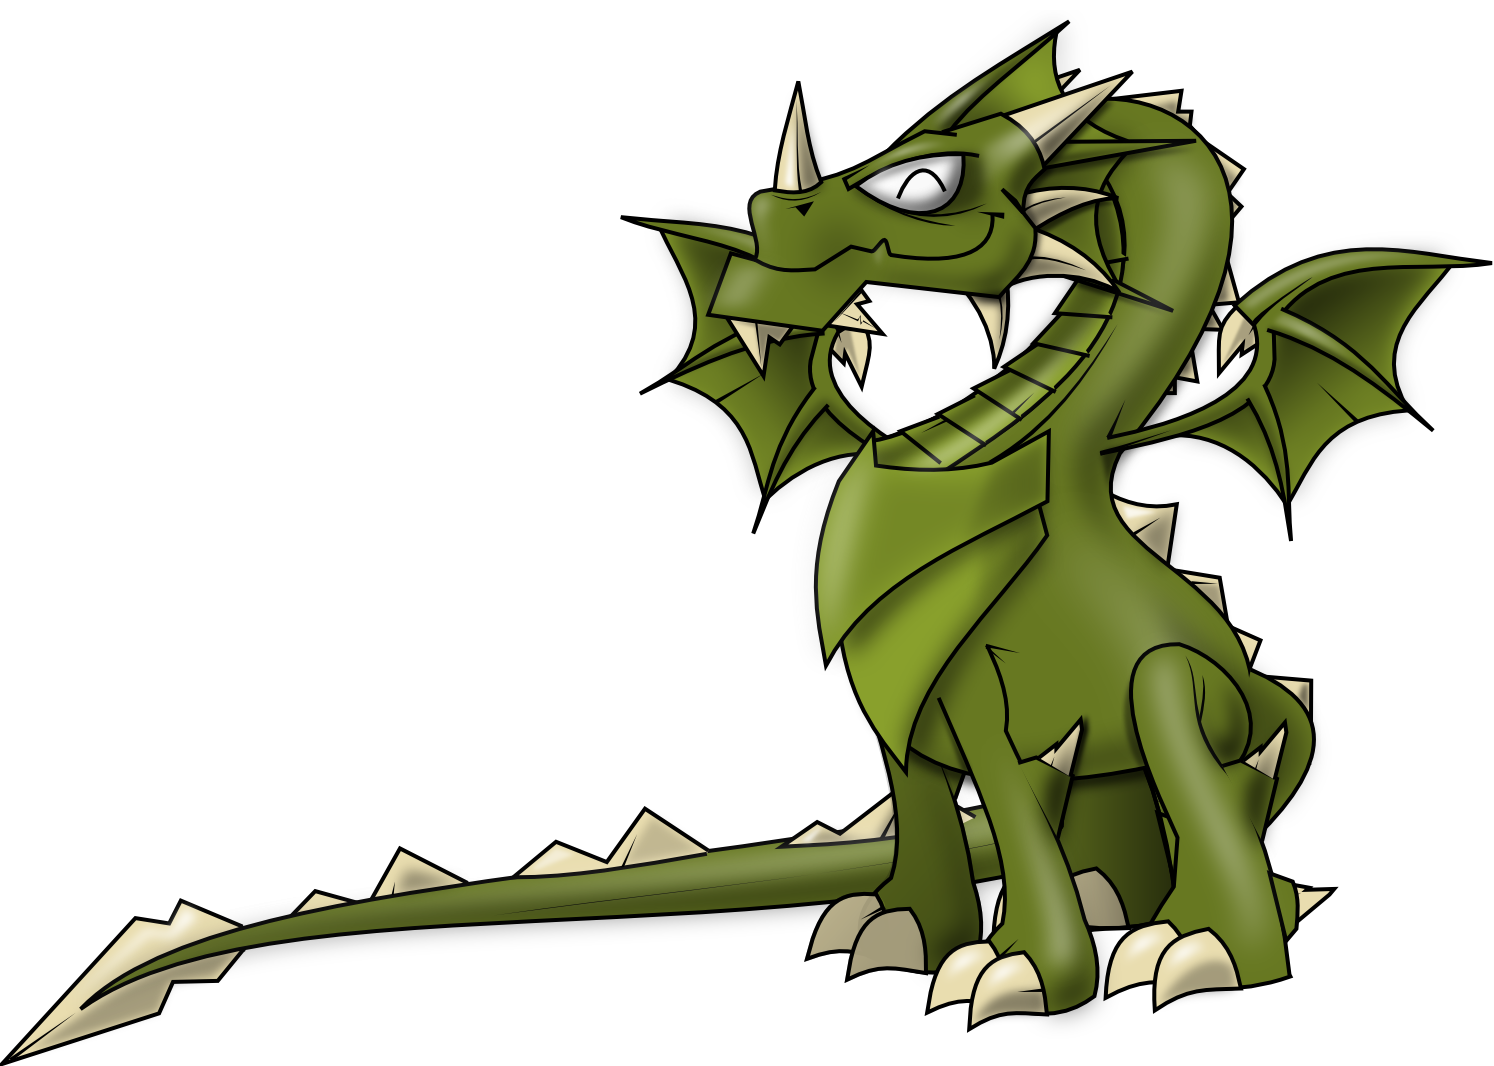 Dragon png images.